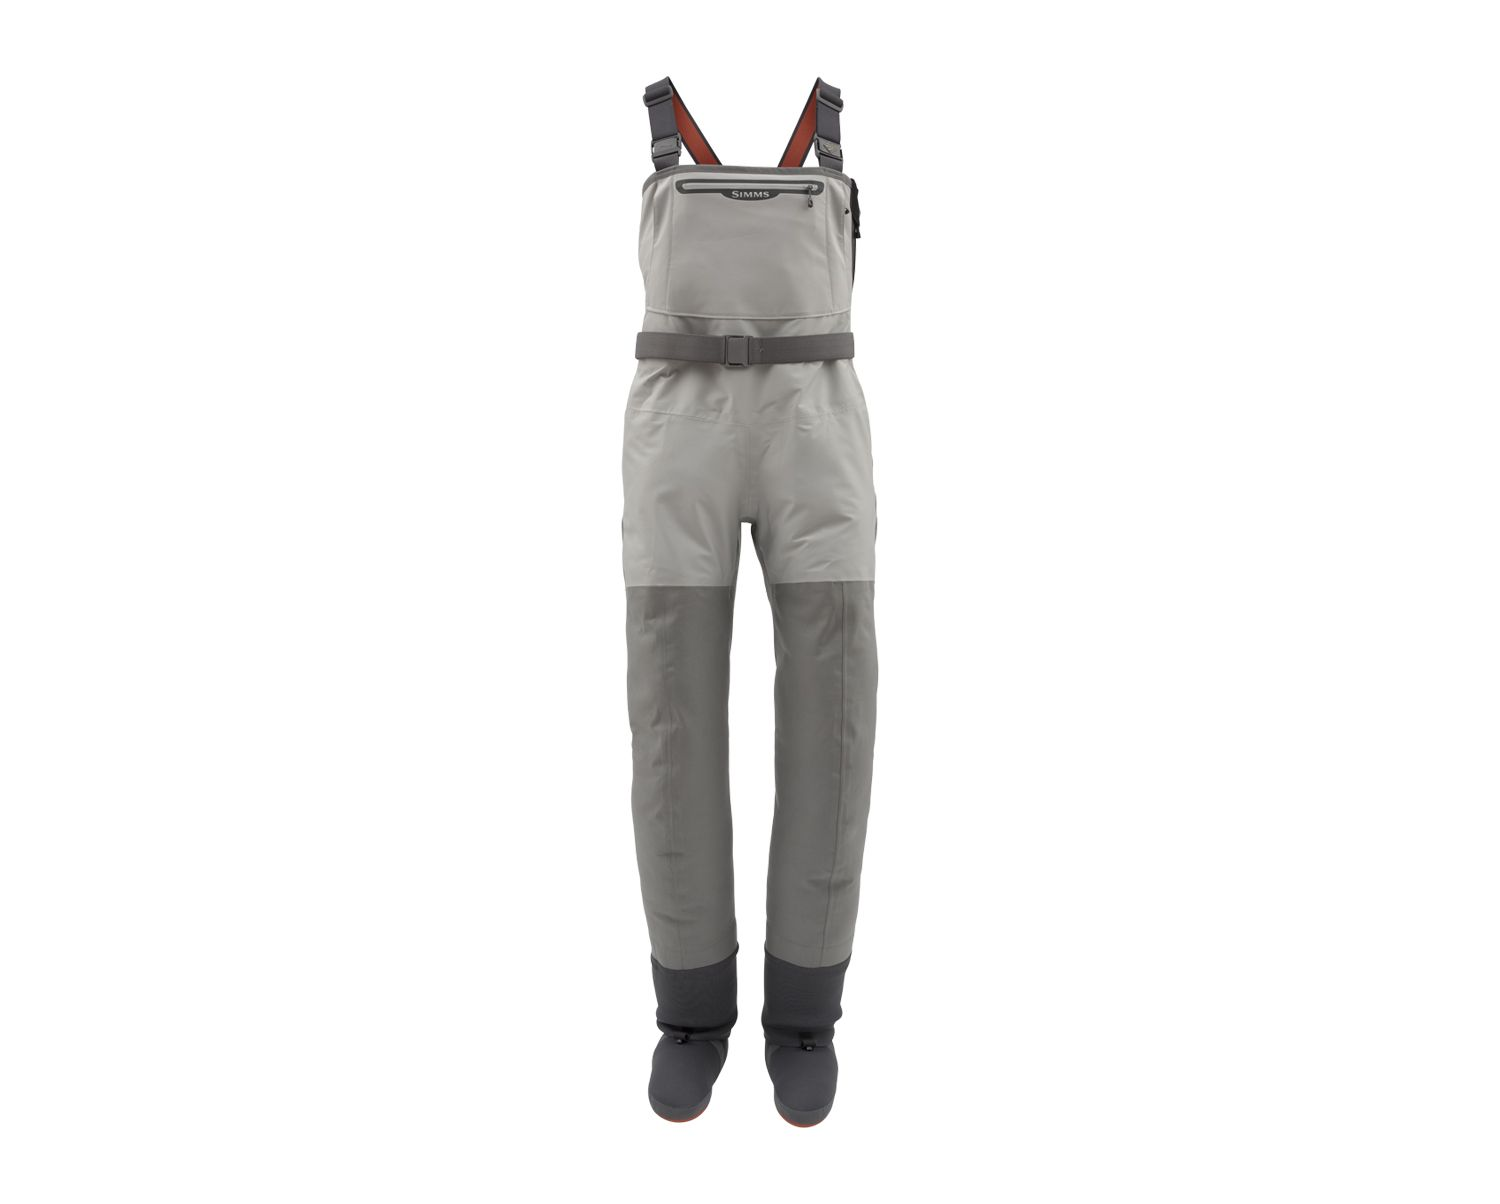 Simms Women's Waders & Boots